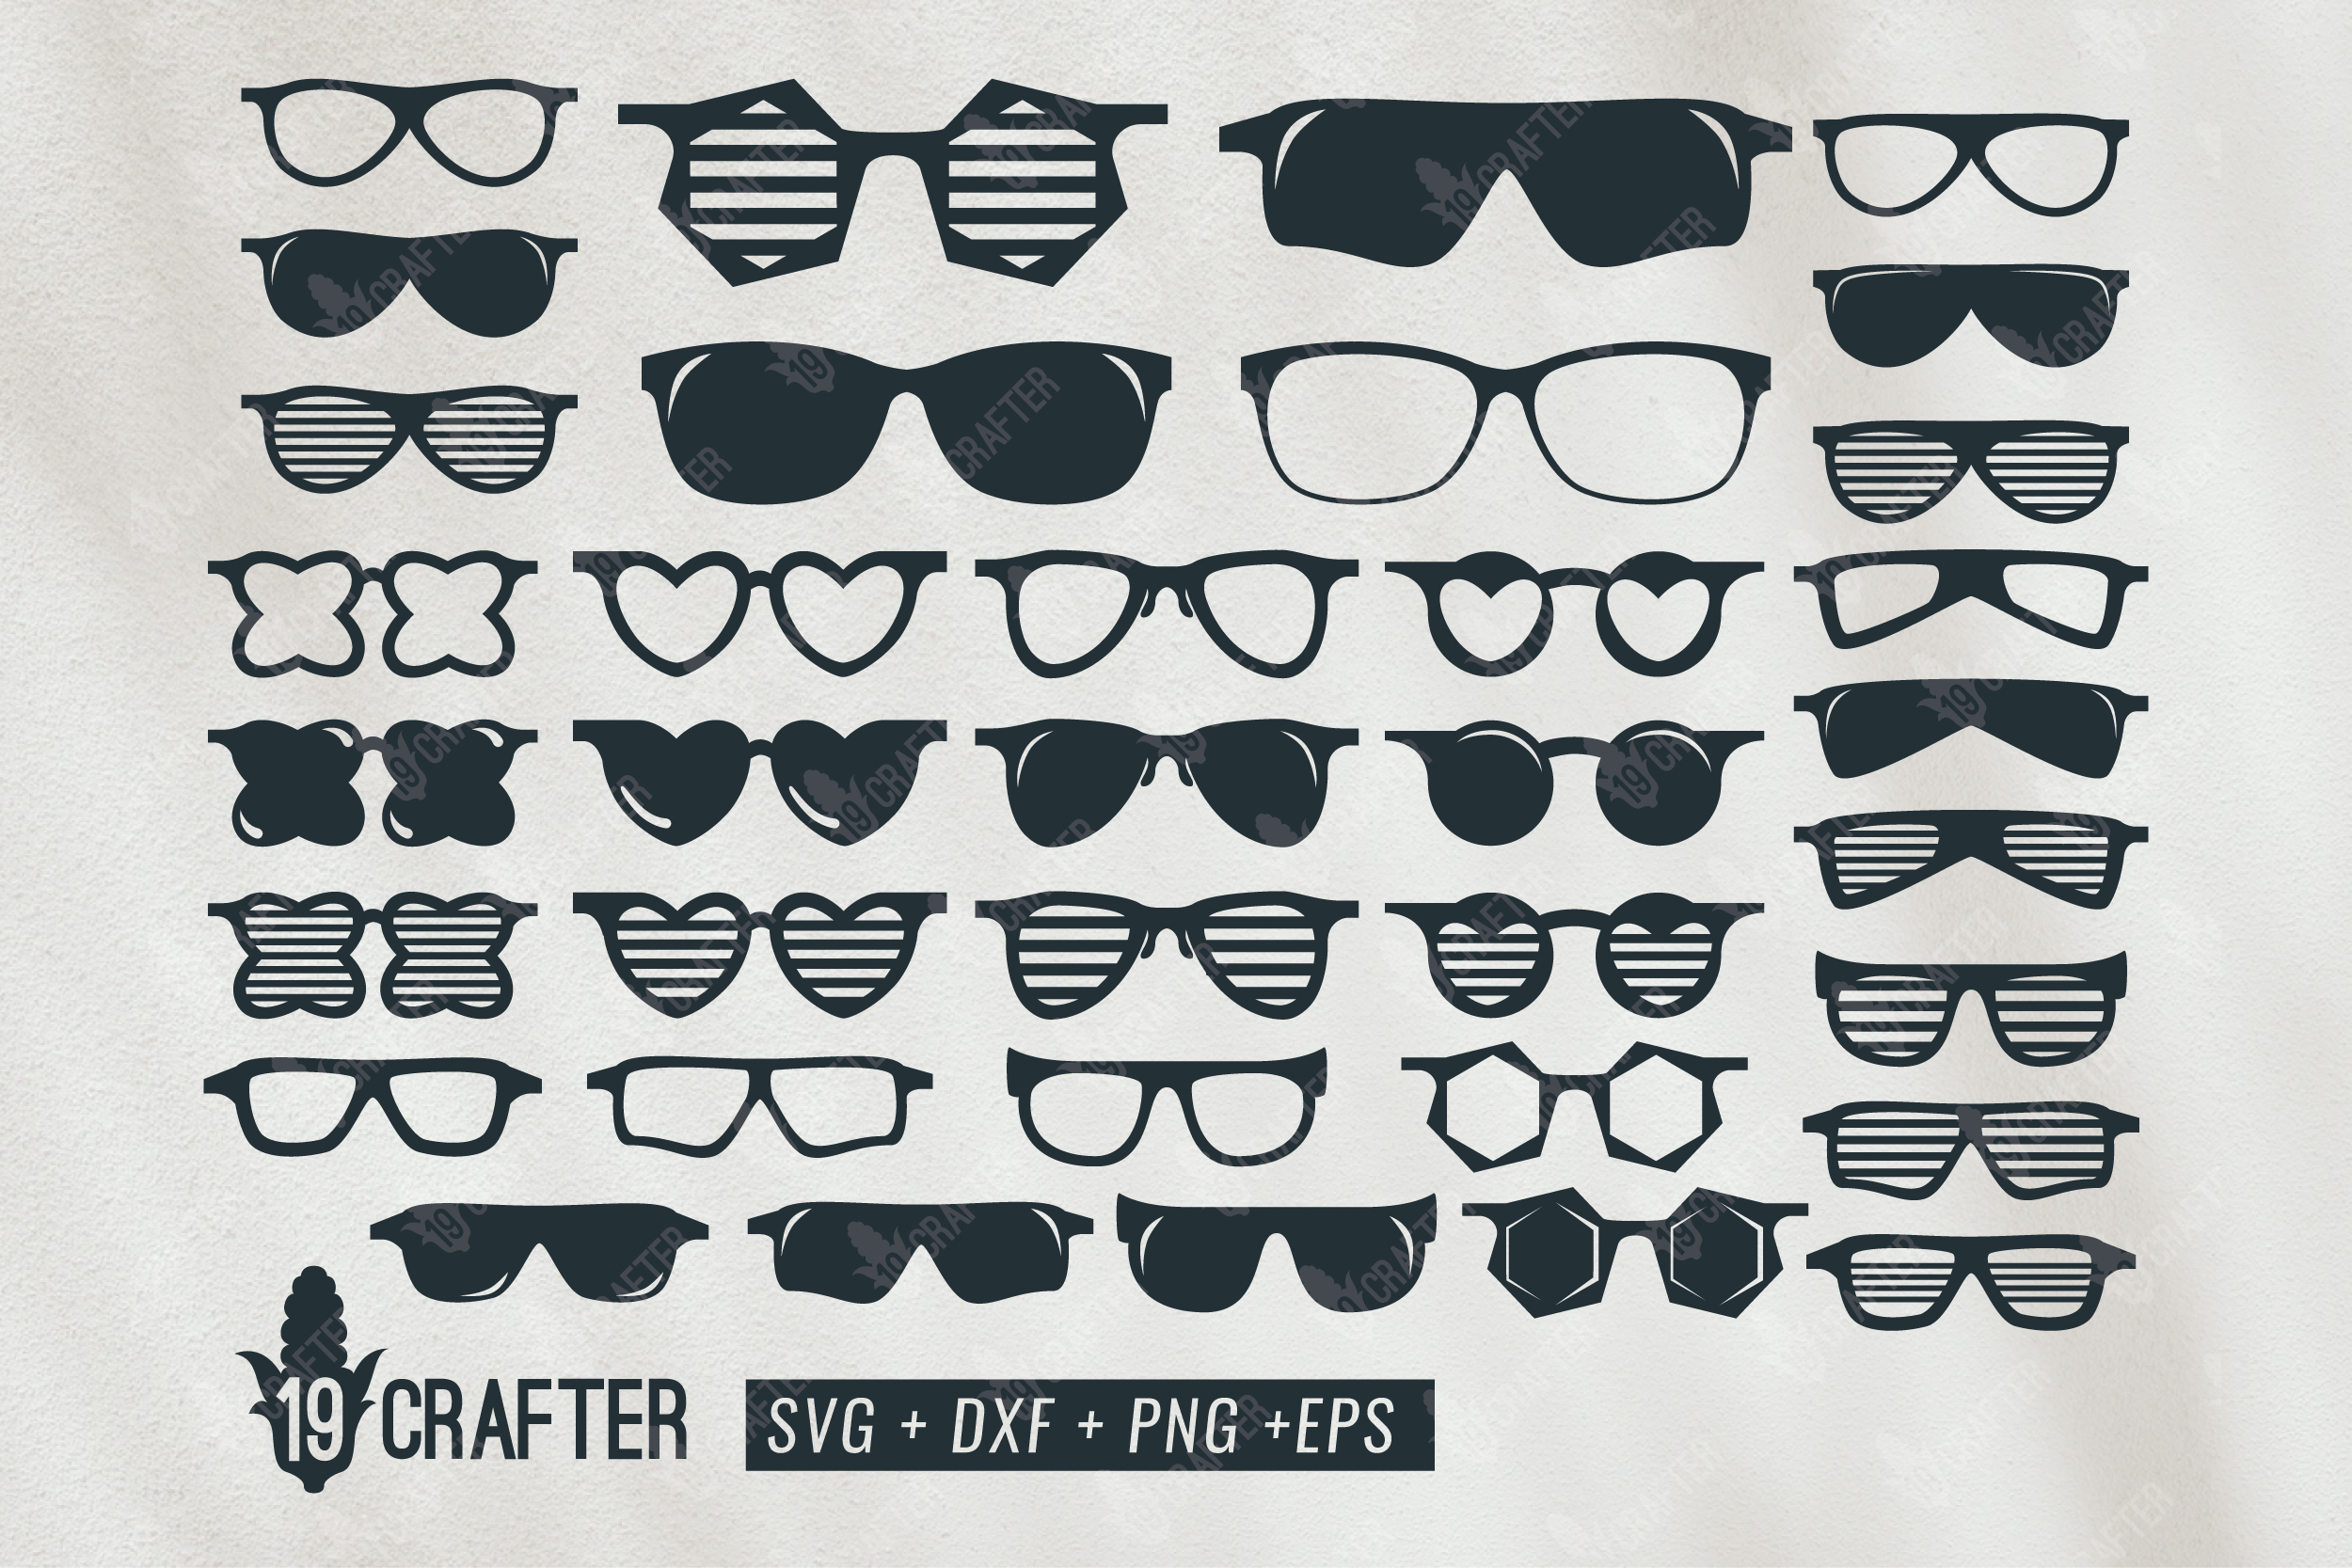 Cool Glasses Big Bundle Graphic By Great19 Creative Fabrica